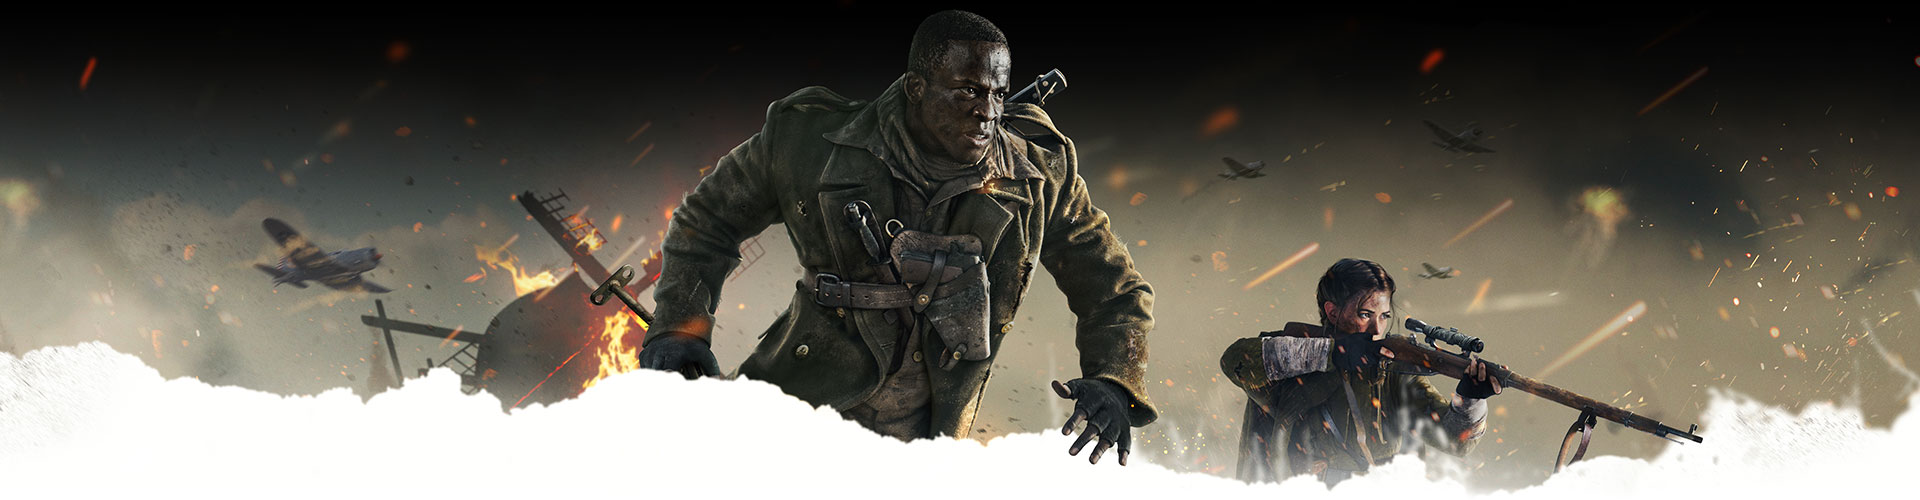 A character running and another character with a gun while many planes fly above them as debris comes down